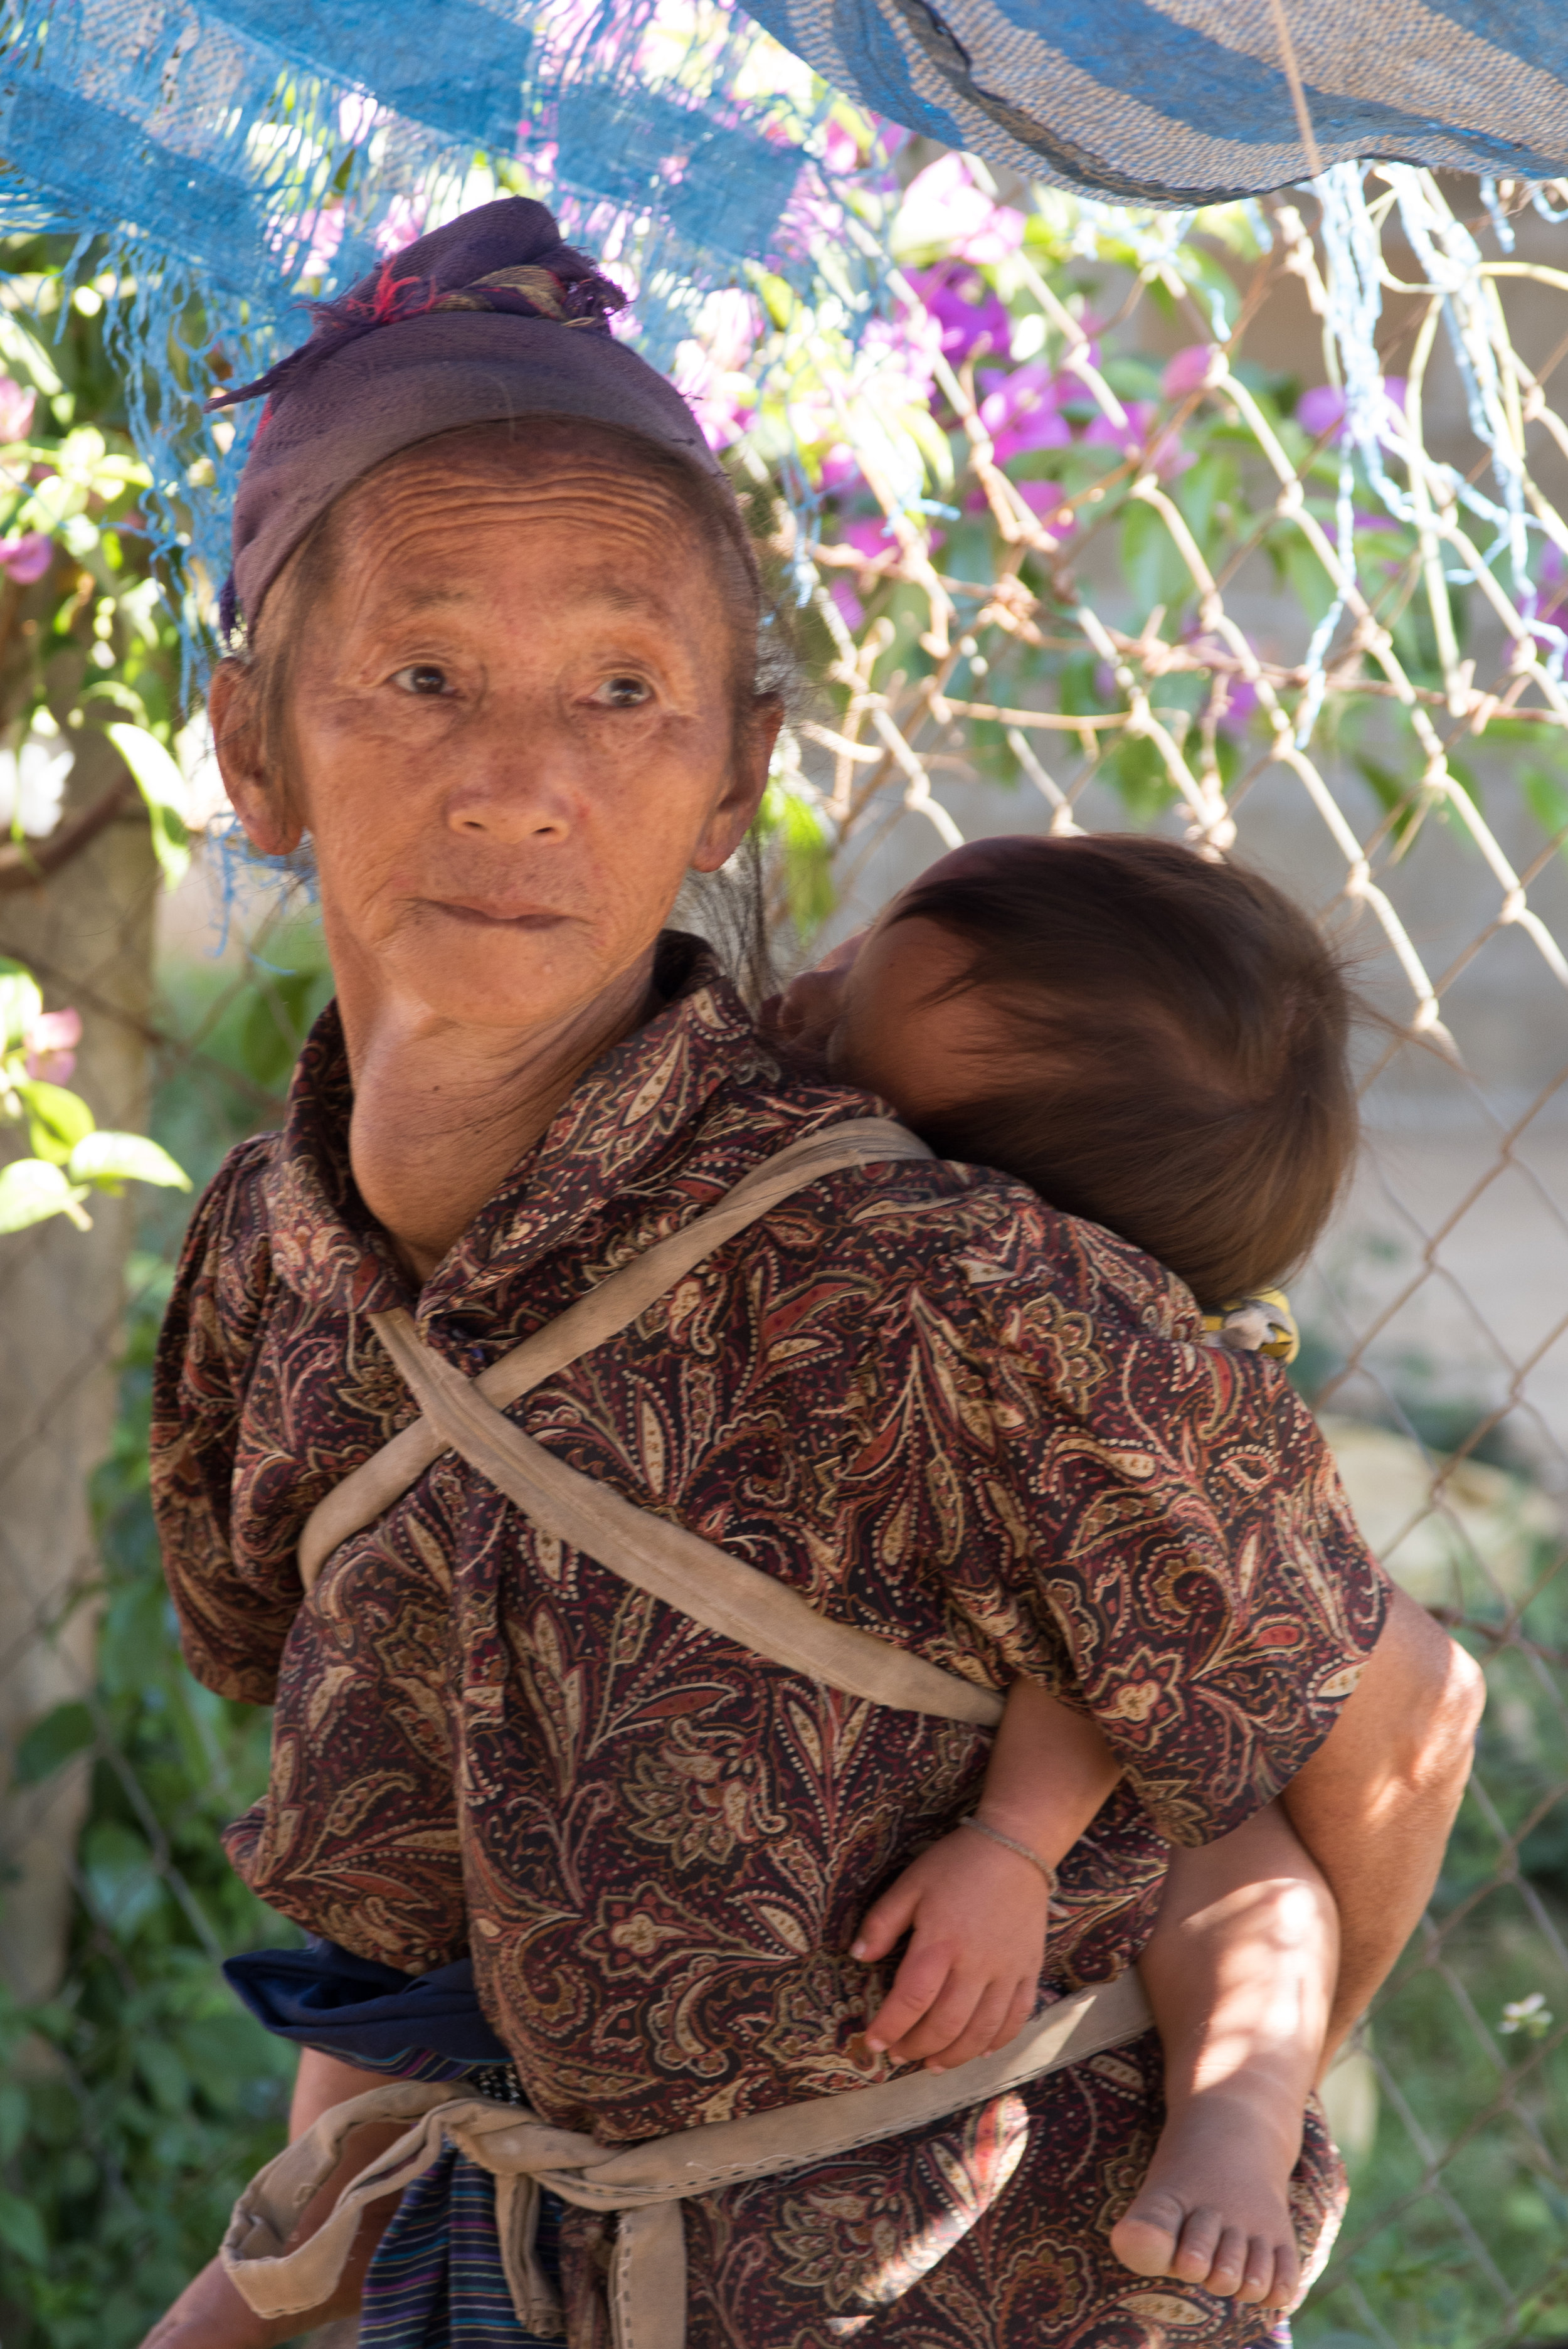 Grandmother and child in village, Ban Phajao, Laos